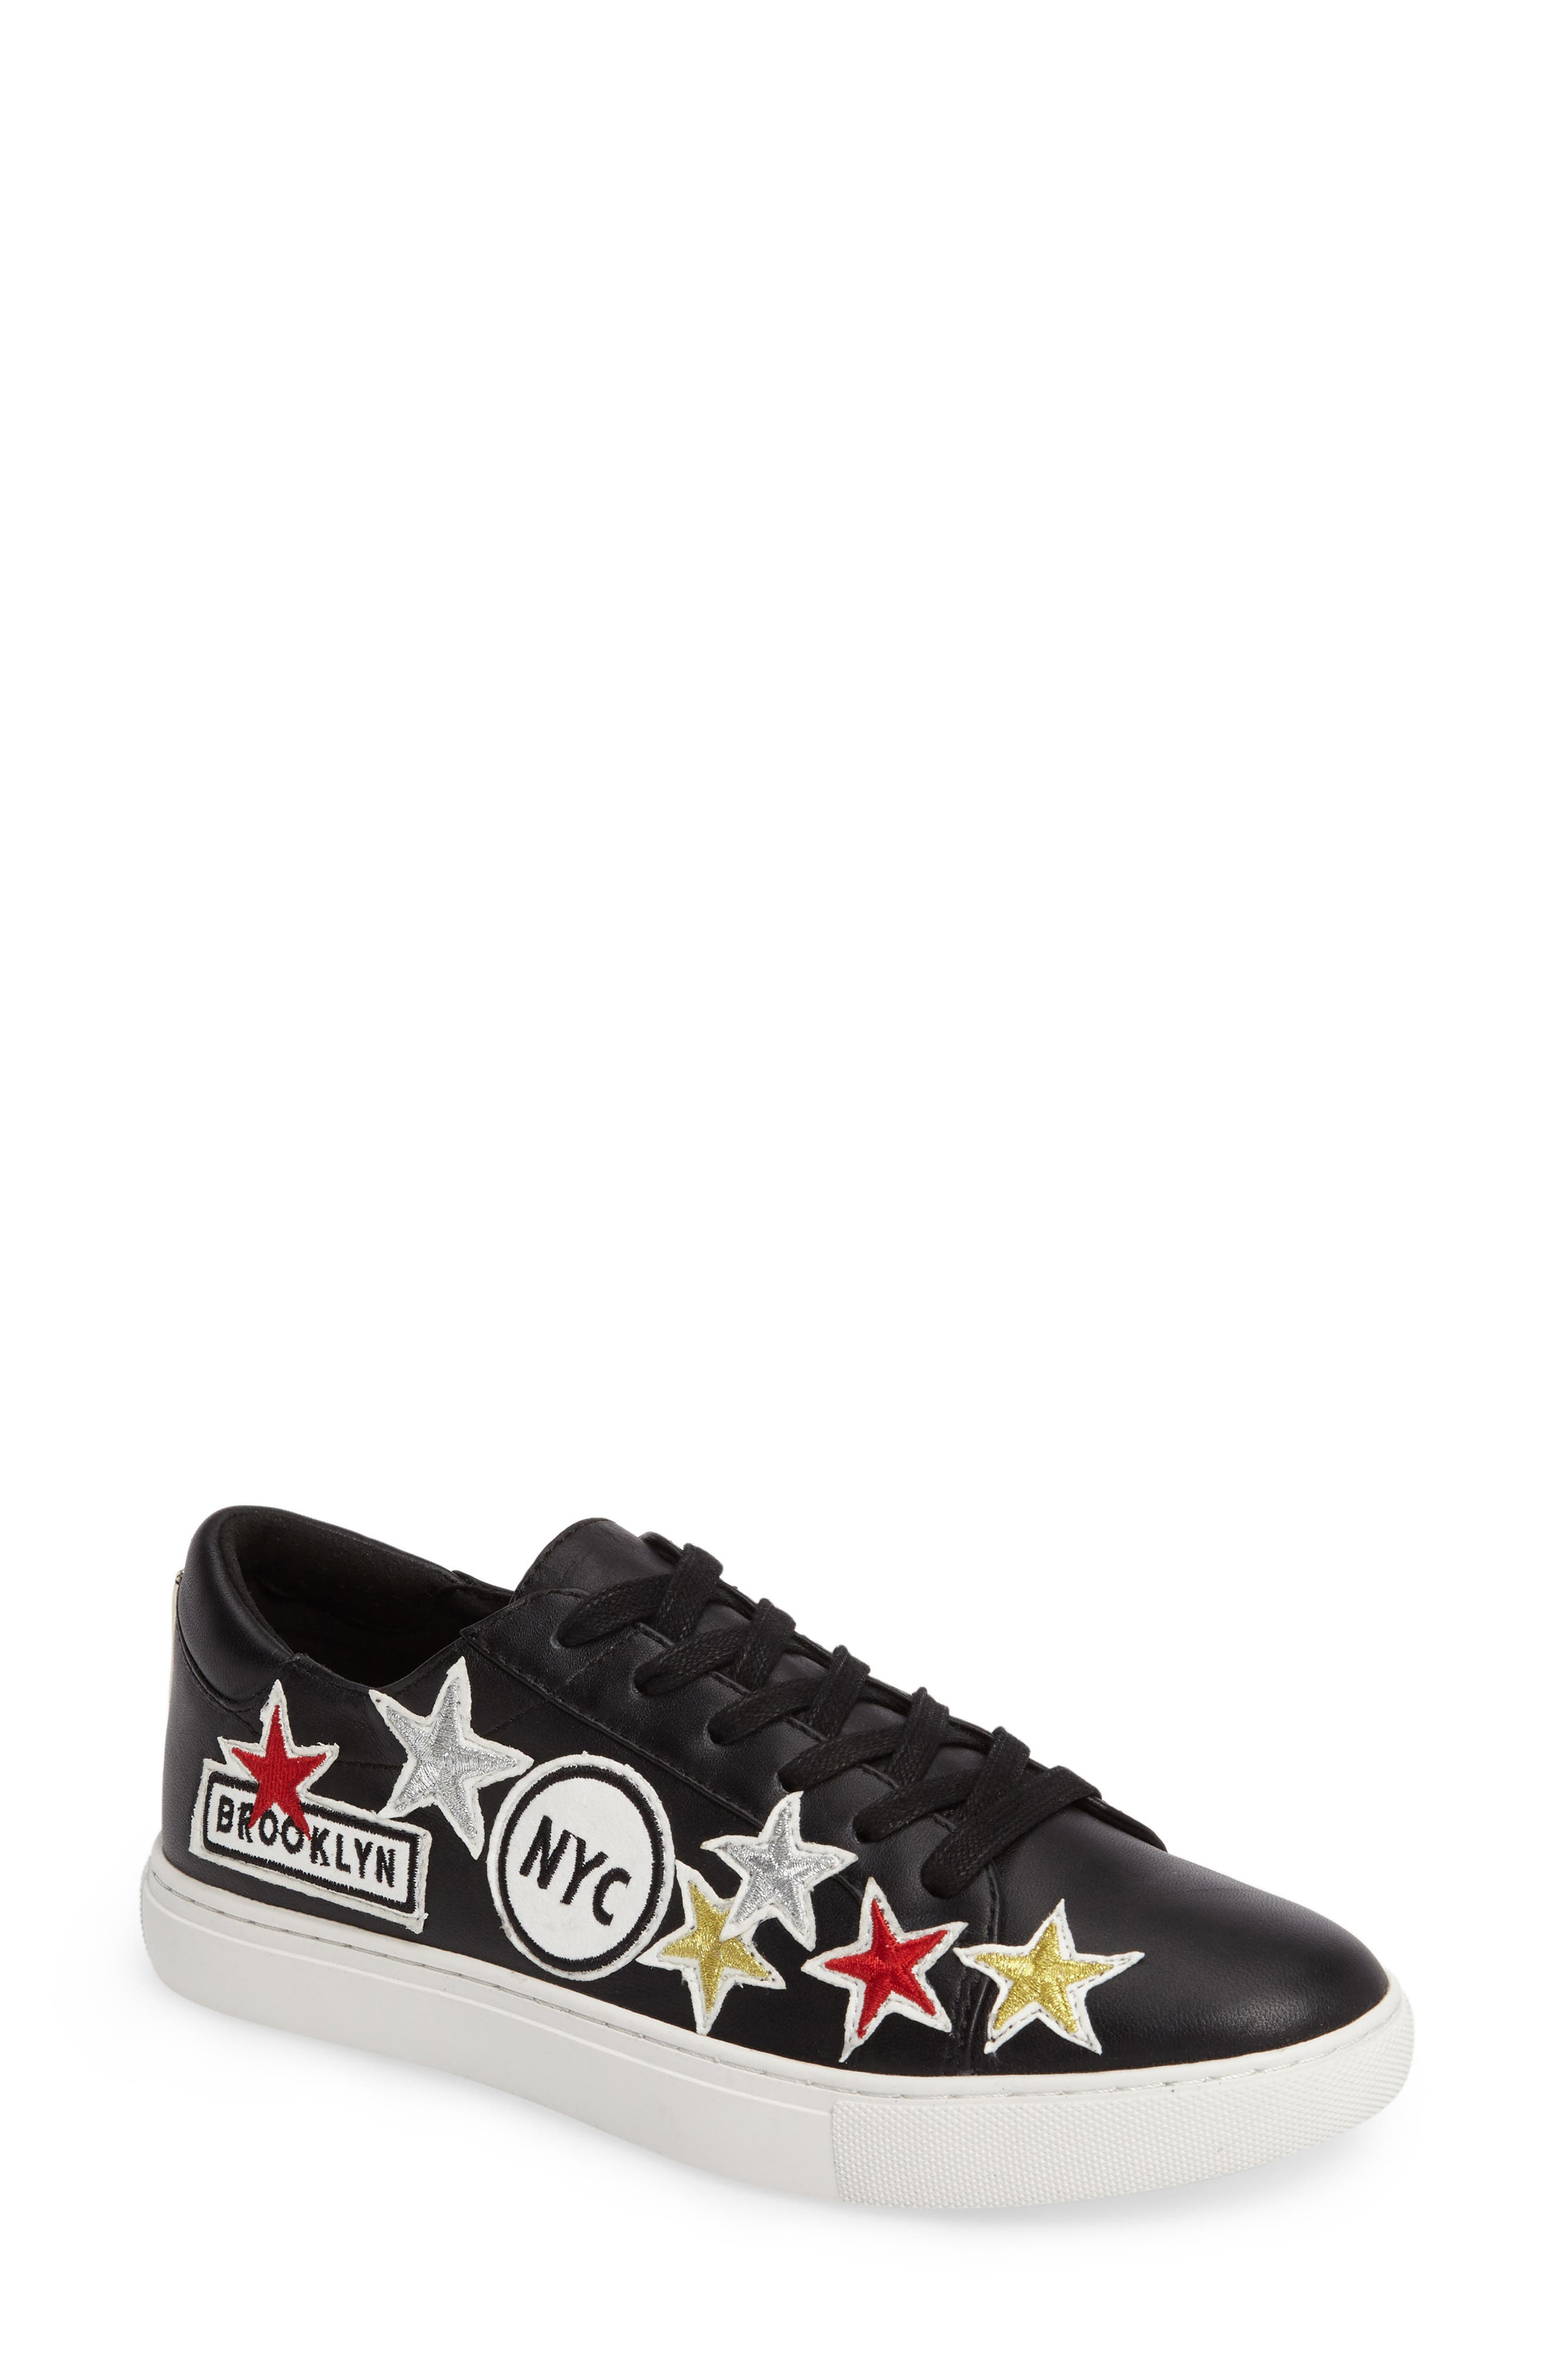 Kenneth Cole New York Kam NYC Sneaker (Women)